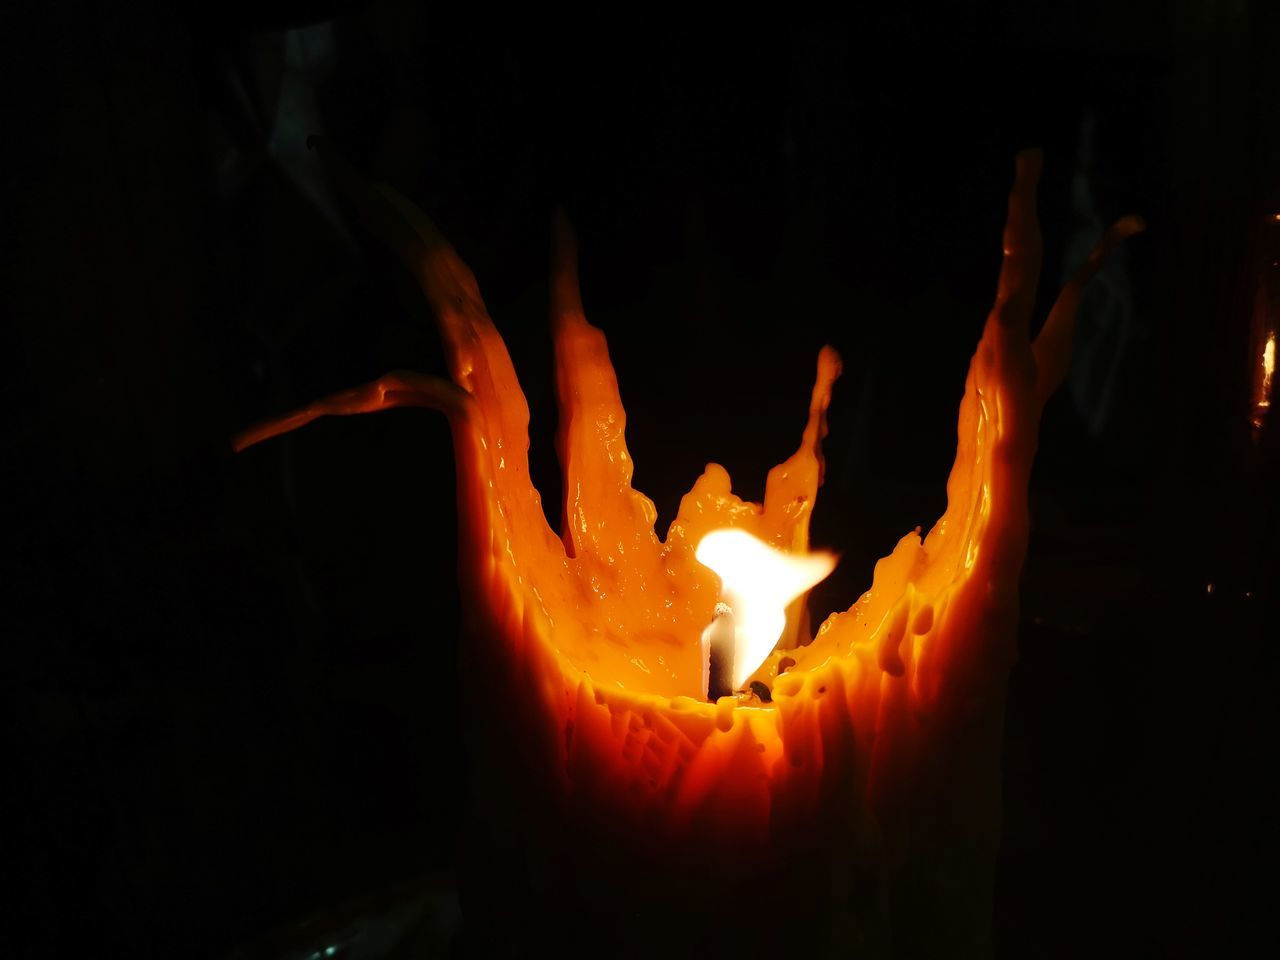 heat - temperature, burning, fire, flame, fire - natural phenomenon, orange color, glowing, nature, no people, close-up, dark, indoors, night, motion, candle, illuminated, wood - material, black background, event, blurred motion, melting